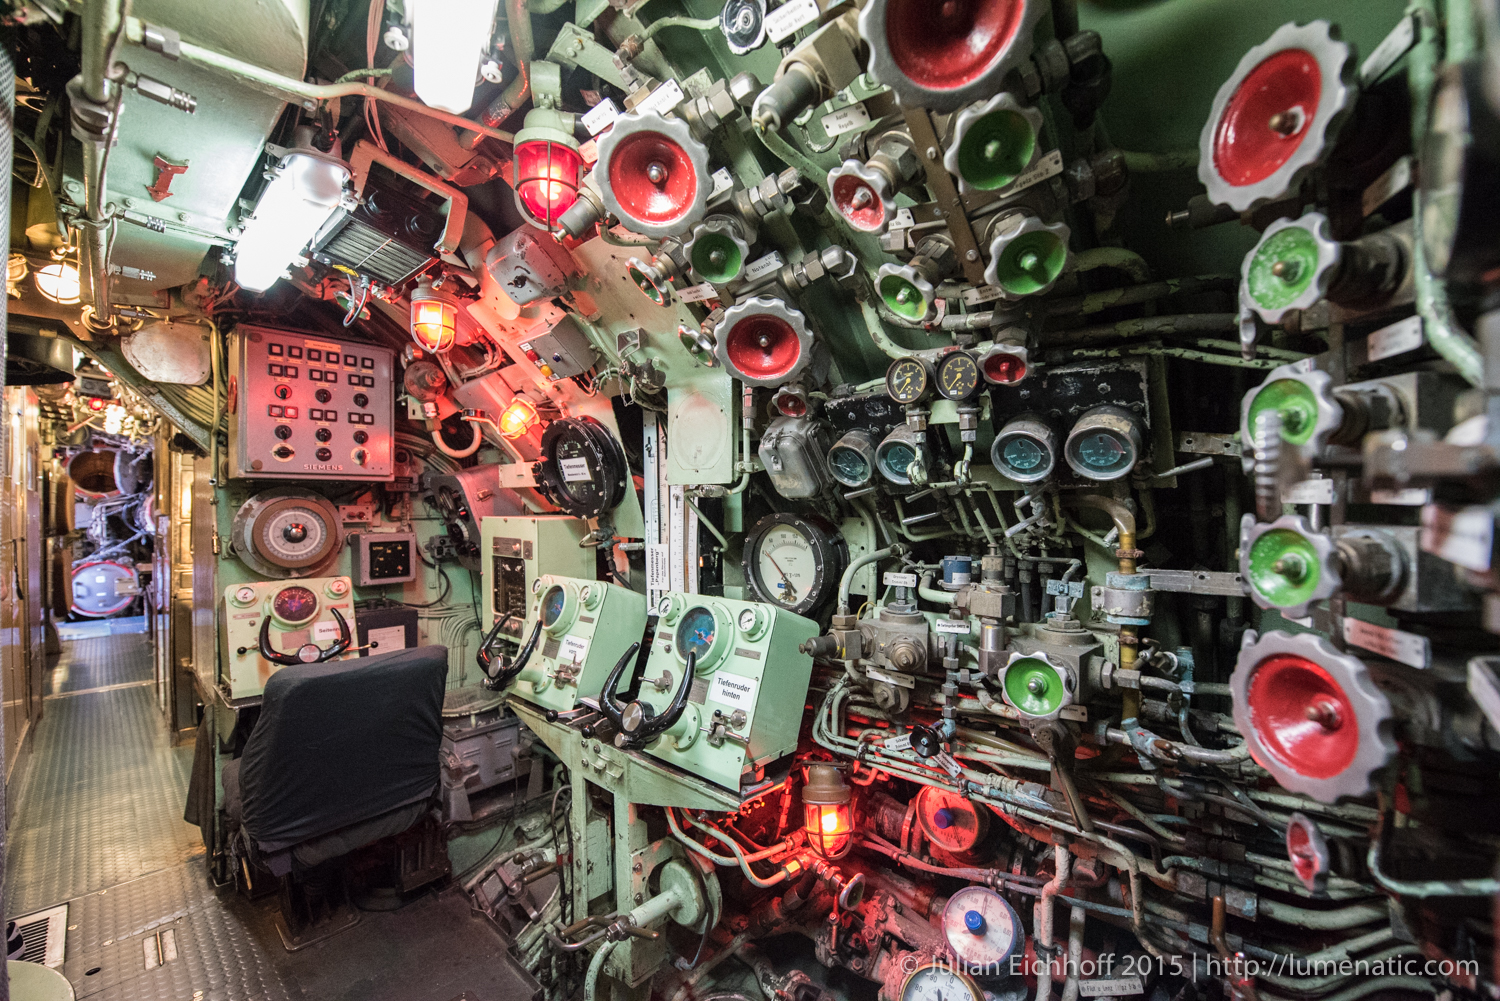 Photographing inside a submarine, part 2